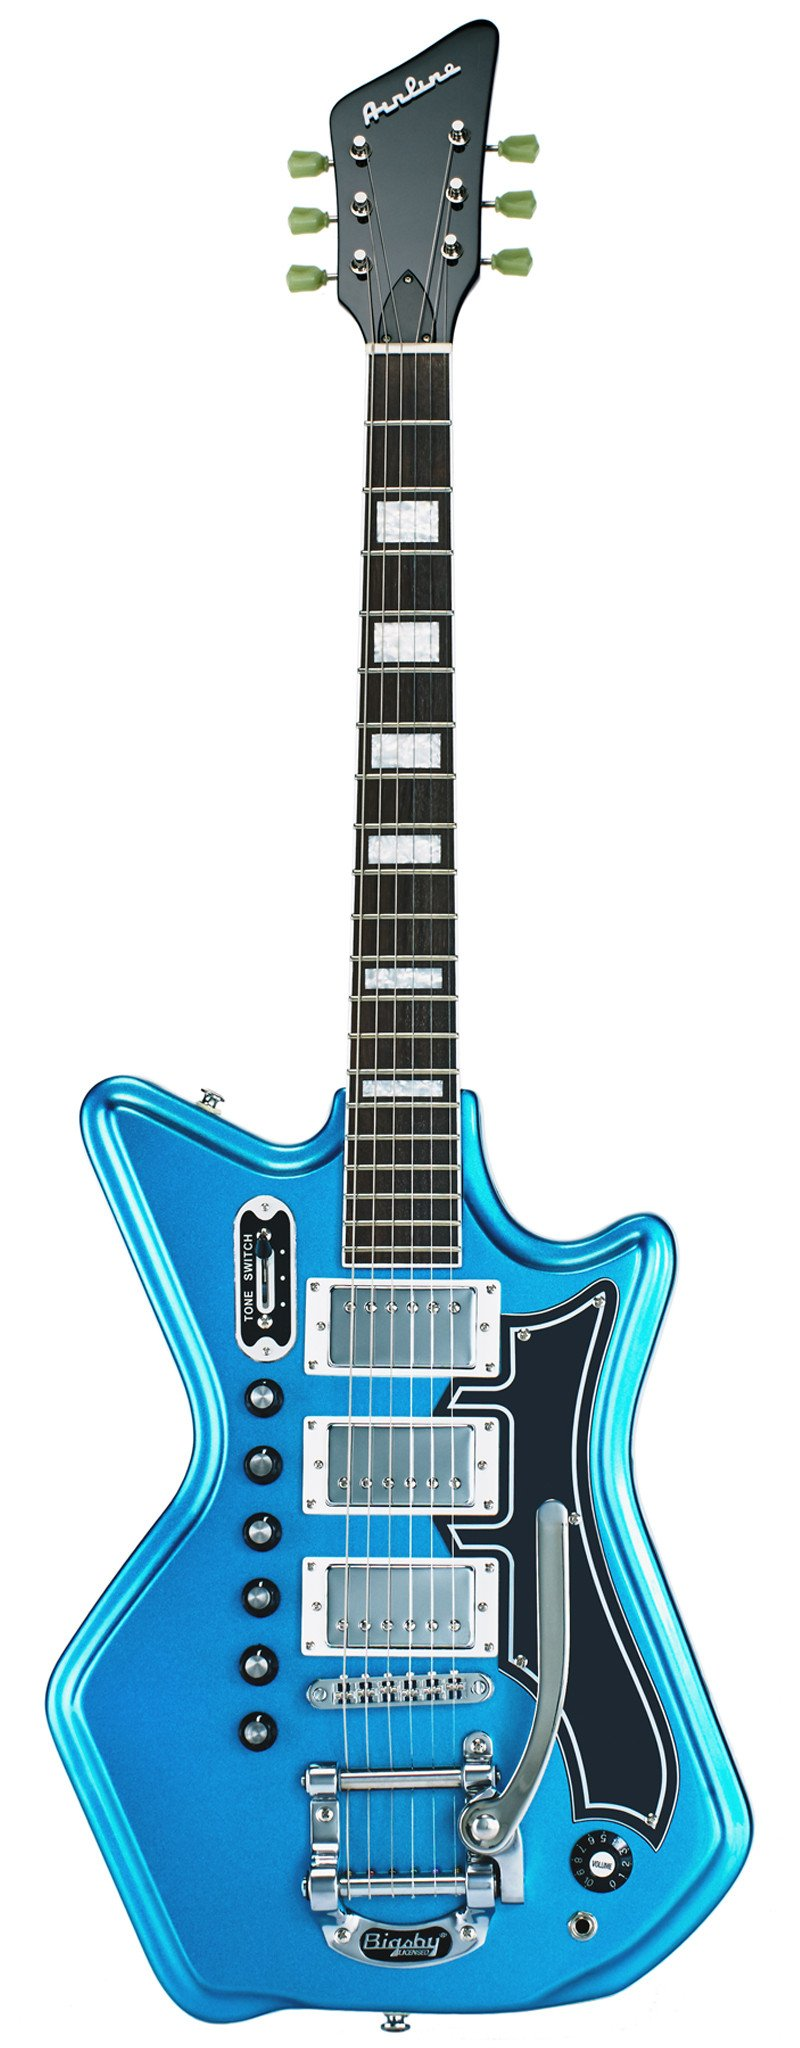 Eastwood Guitars Airline 593P DLX Metallic Blue and Black Full Front